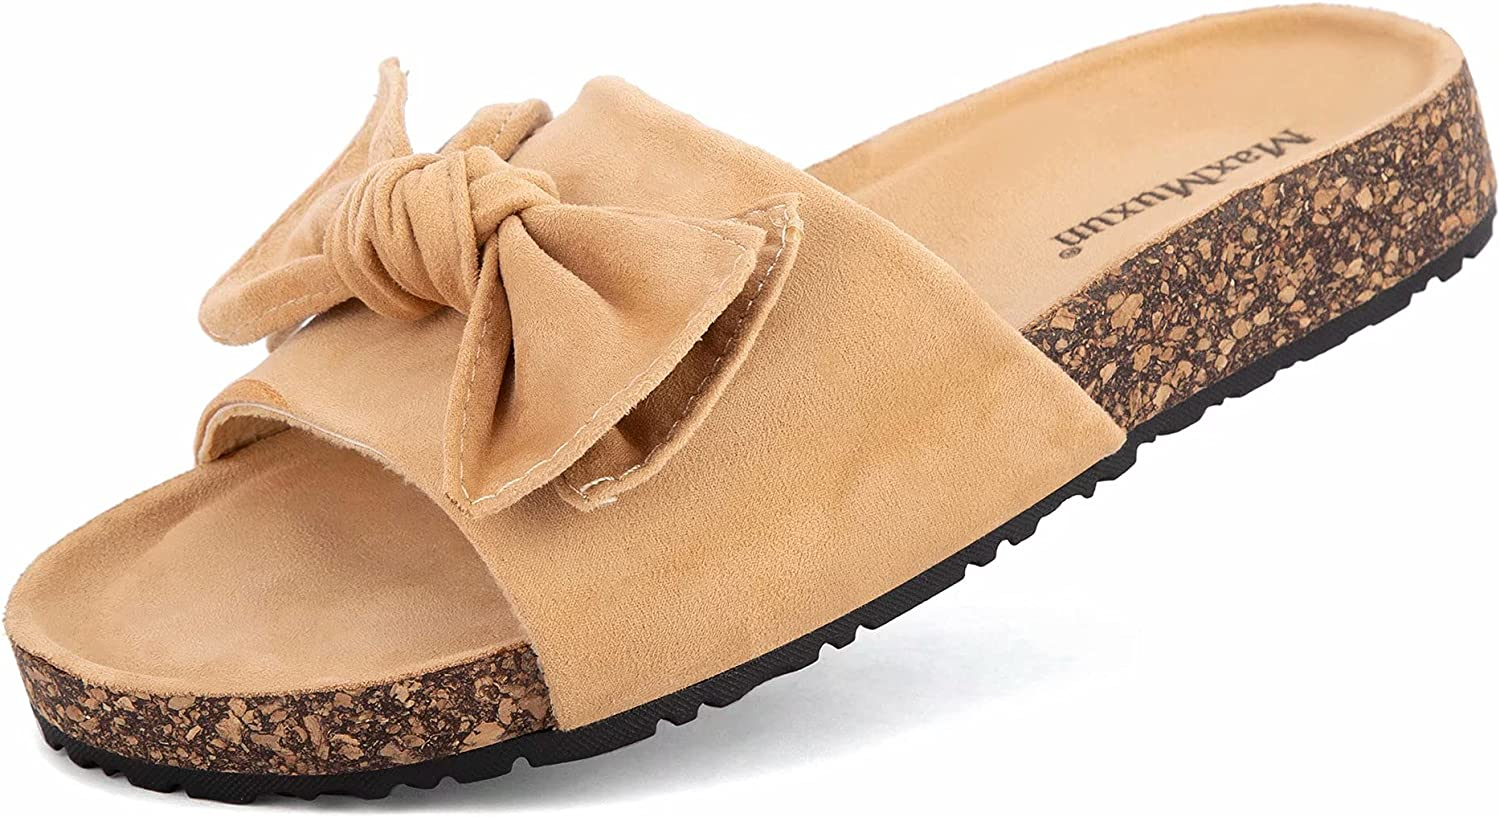 MaxMuxun Women's Slides Sandals Super beauty product restock quality top Bowknot Beach Comfort Cor Casual supreme